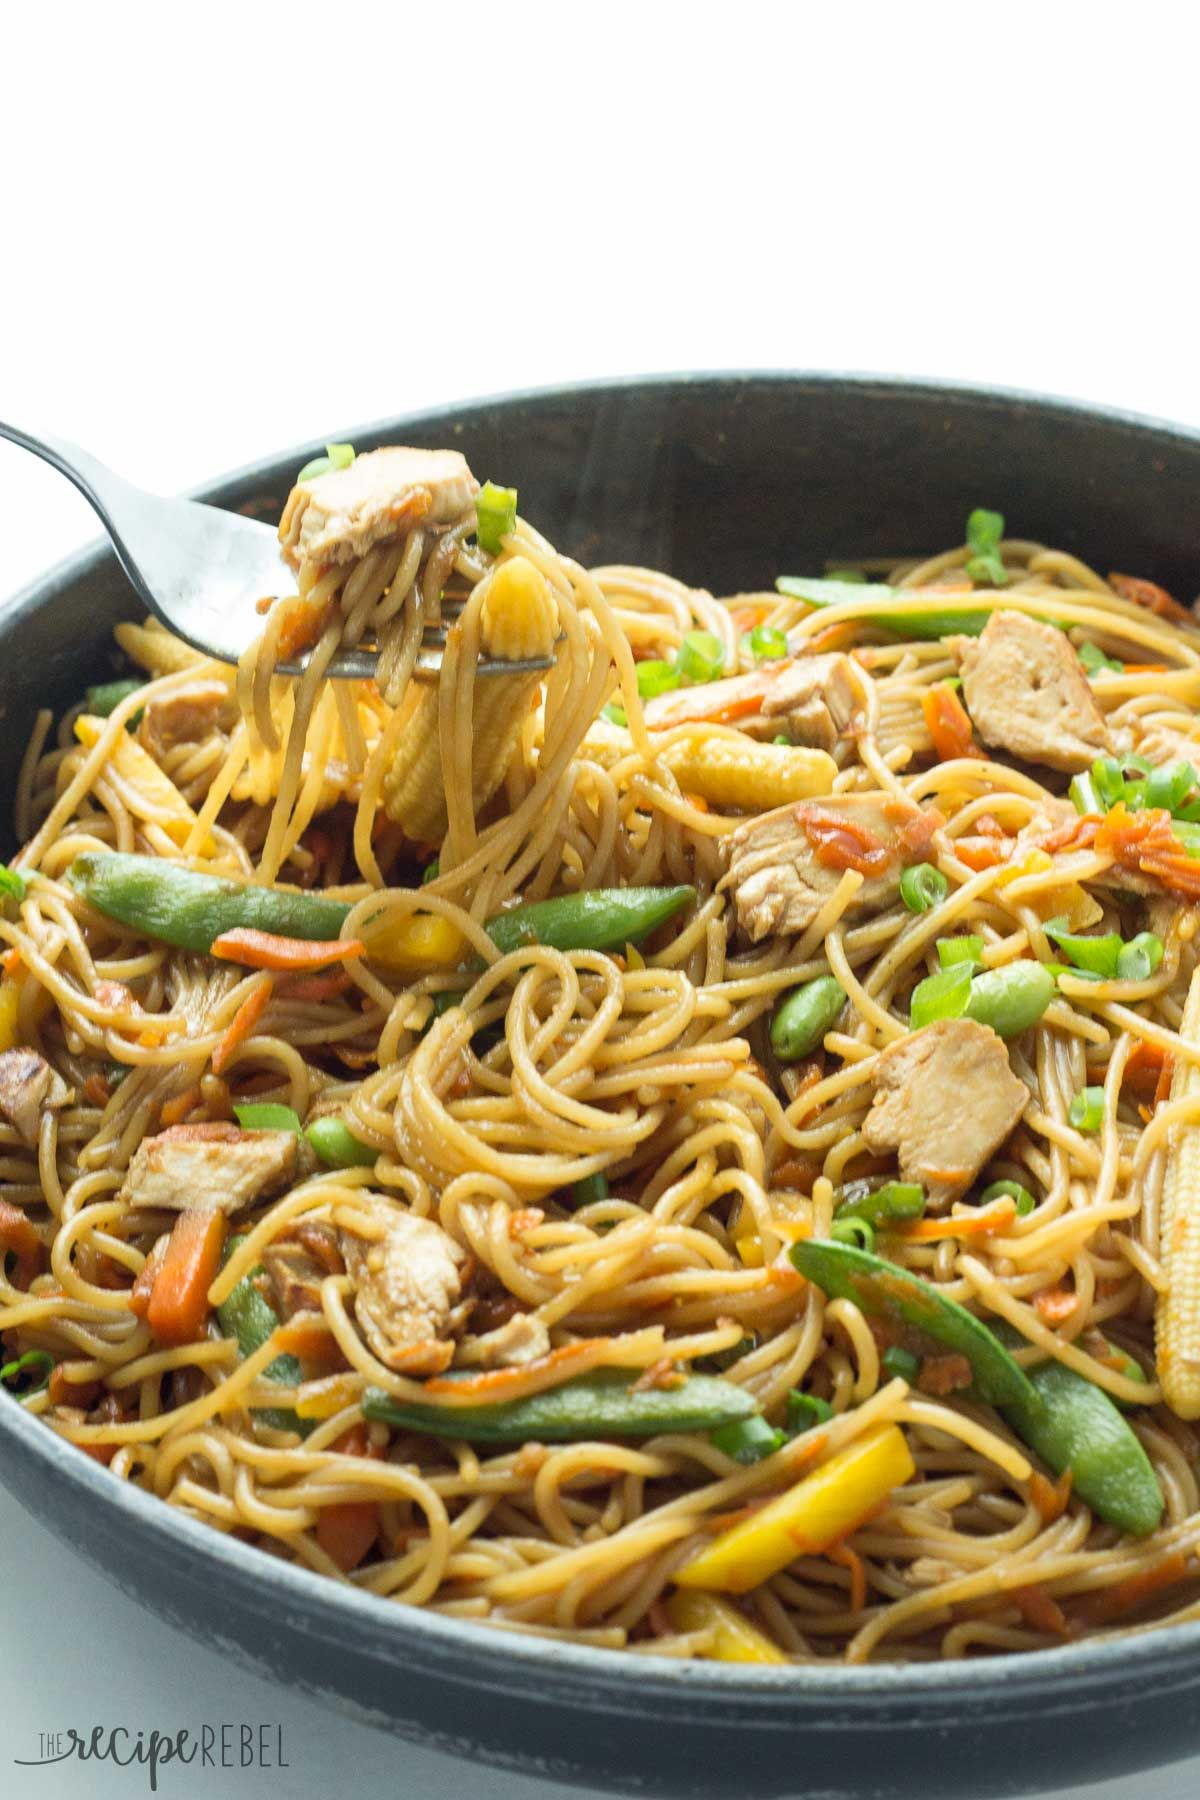 An easy one pot version of chicken chow mein youll never have an easy one pot version of chicken chow mein youll never forumfinder Images